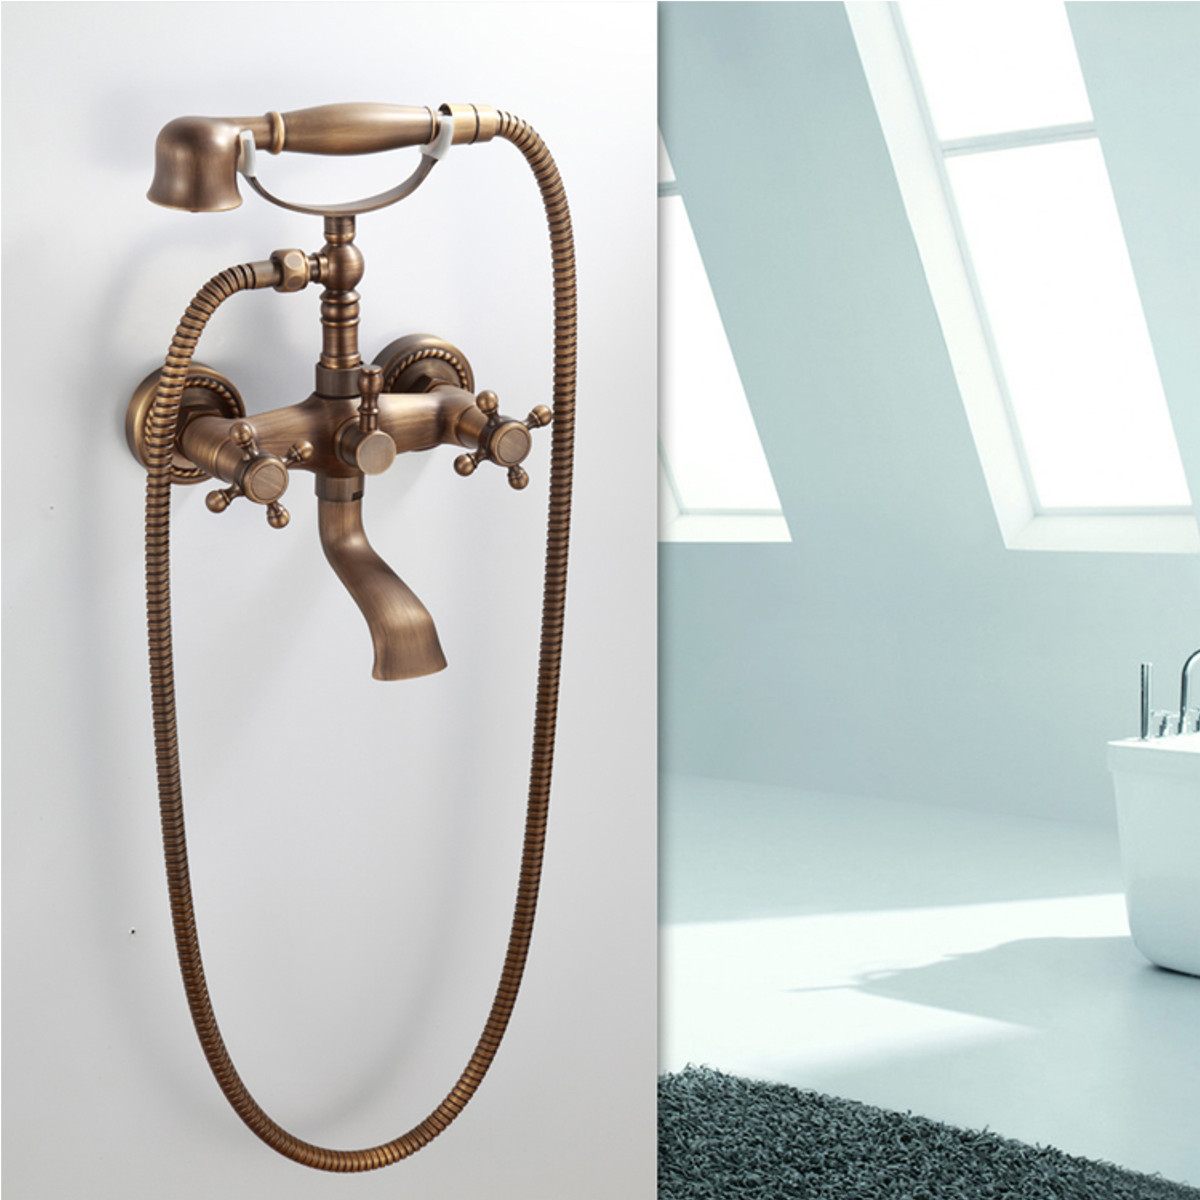 Retro Antique Bronze Bath Tub Faucet With Shower Head Spout Mixer ...